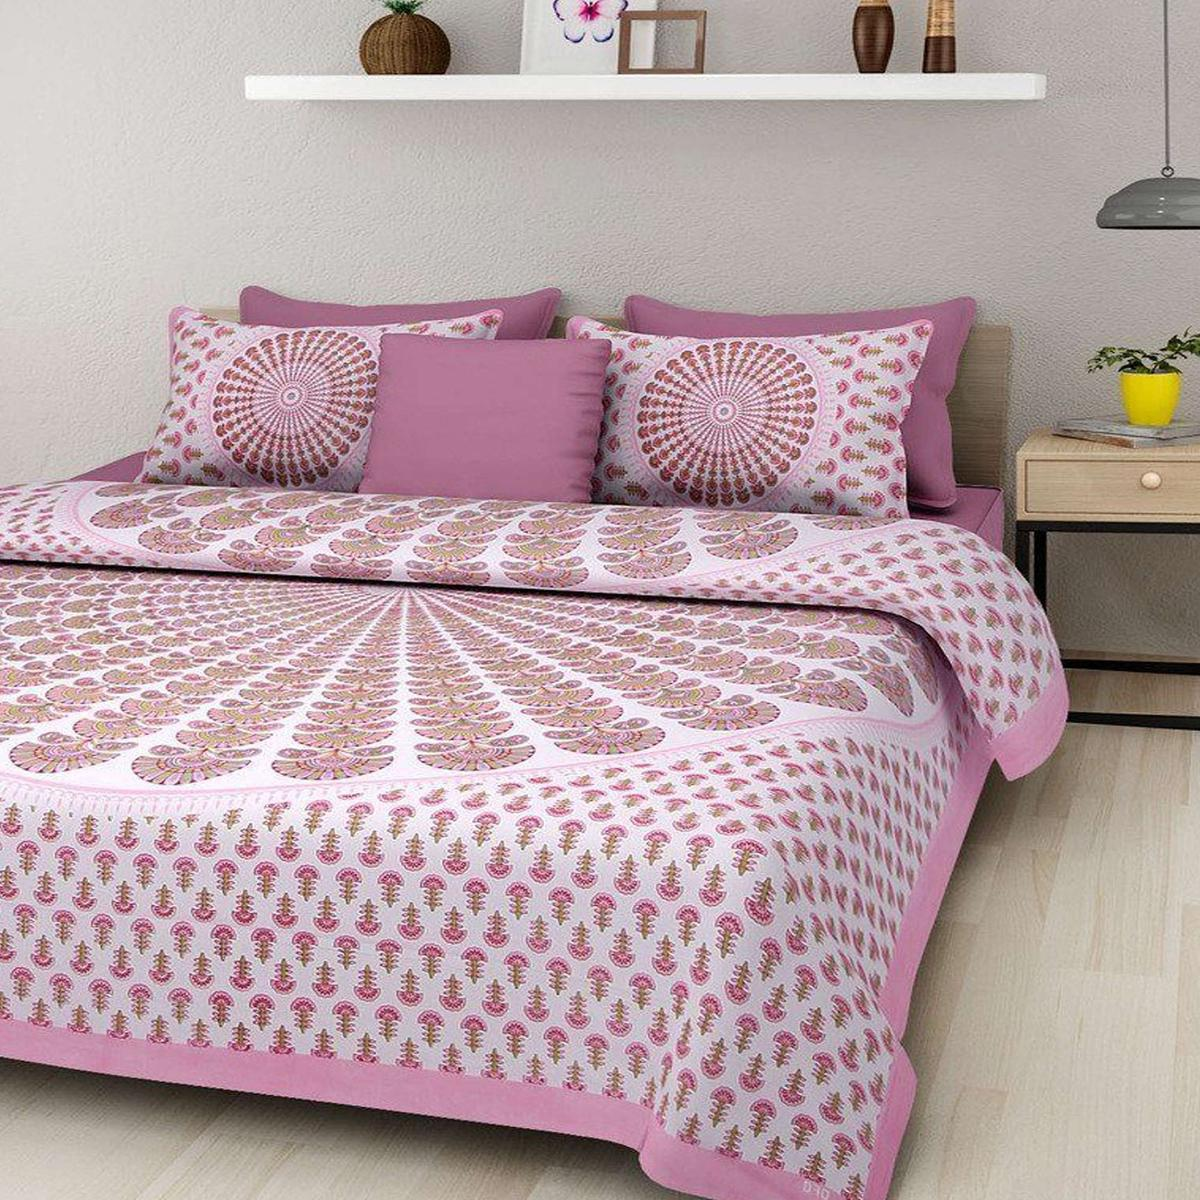 Zyla - Pink Colored Morpankh Printed Double Queen Cotton Bedsheet